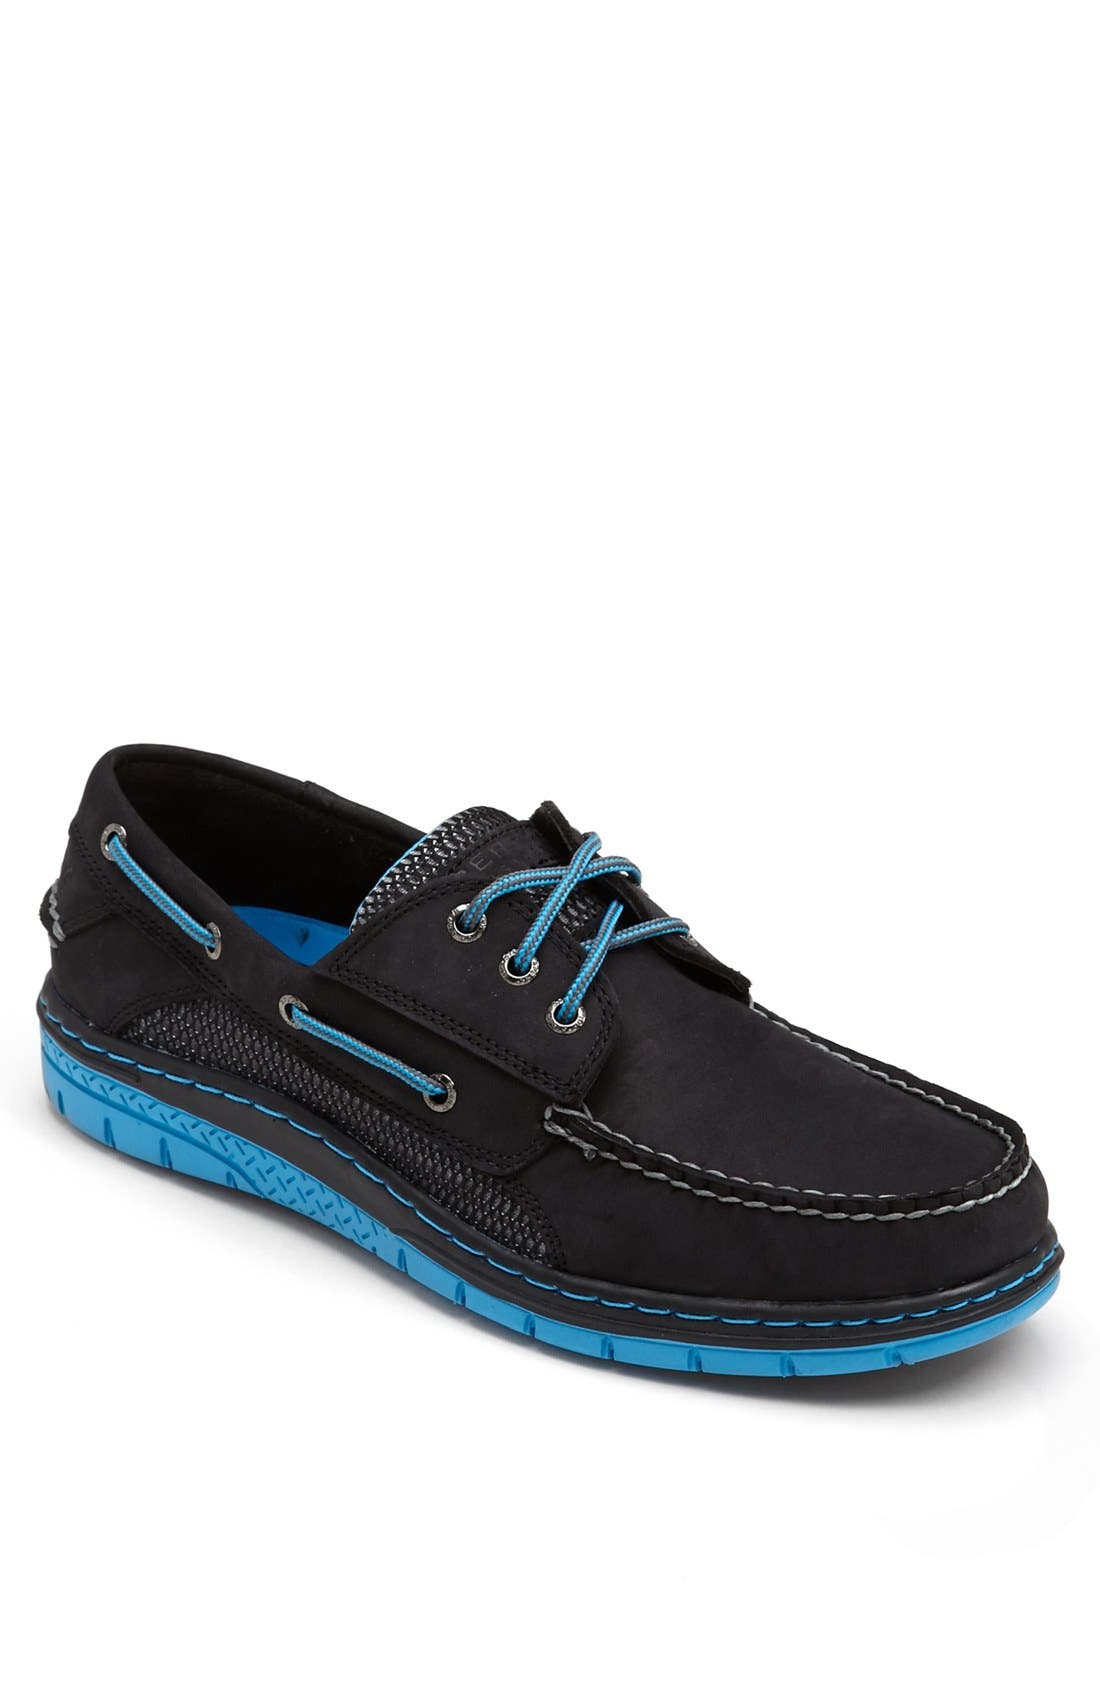 'Billfish Ultralite' Boat Shoe,                             Main thumbnail 3, color,